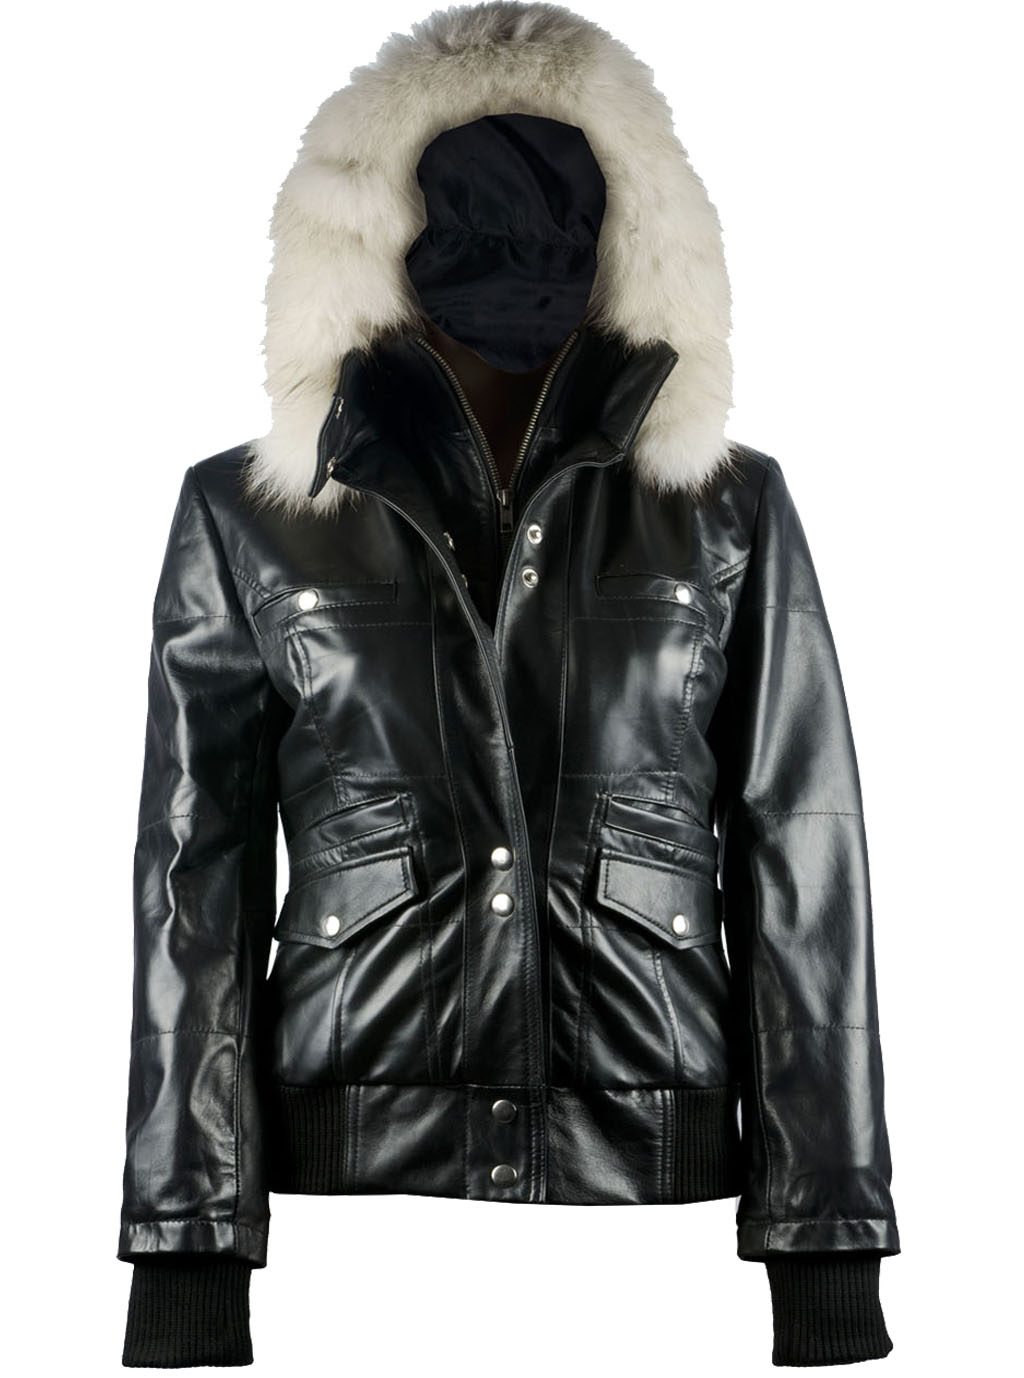 Womens leather jackets with hoods